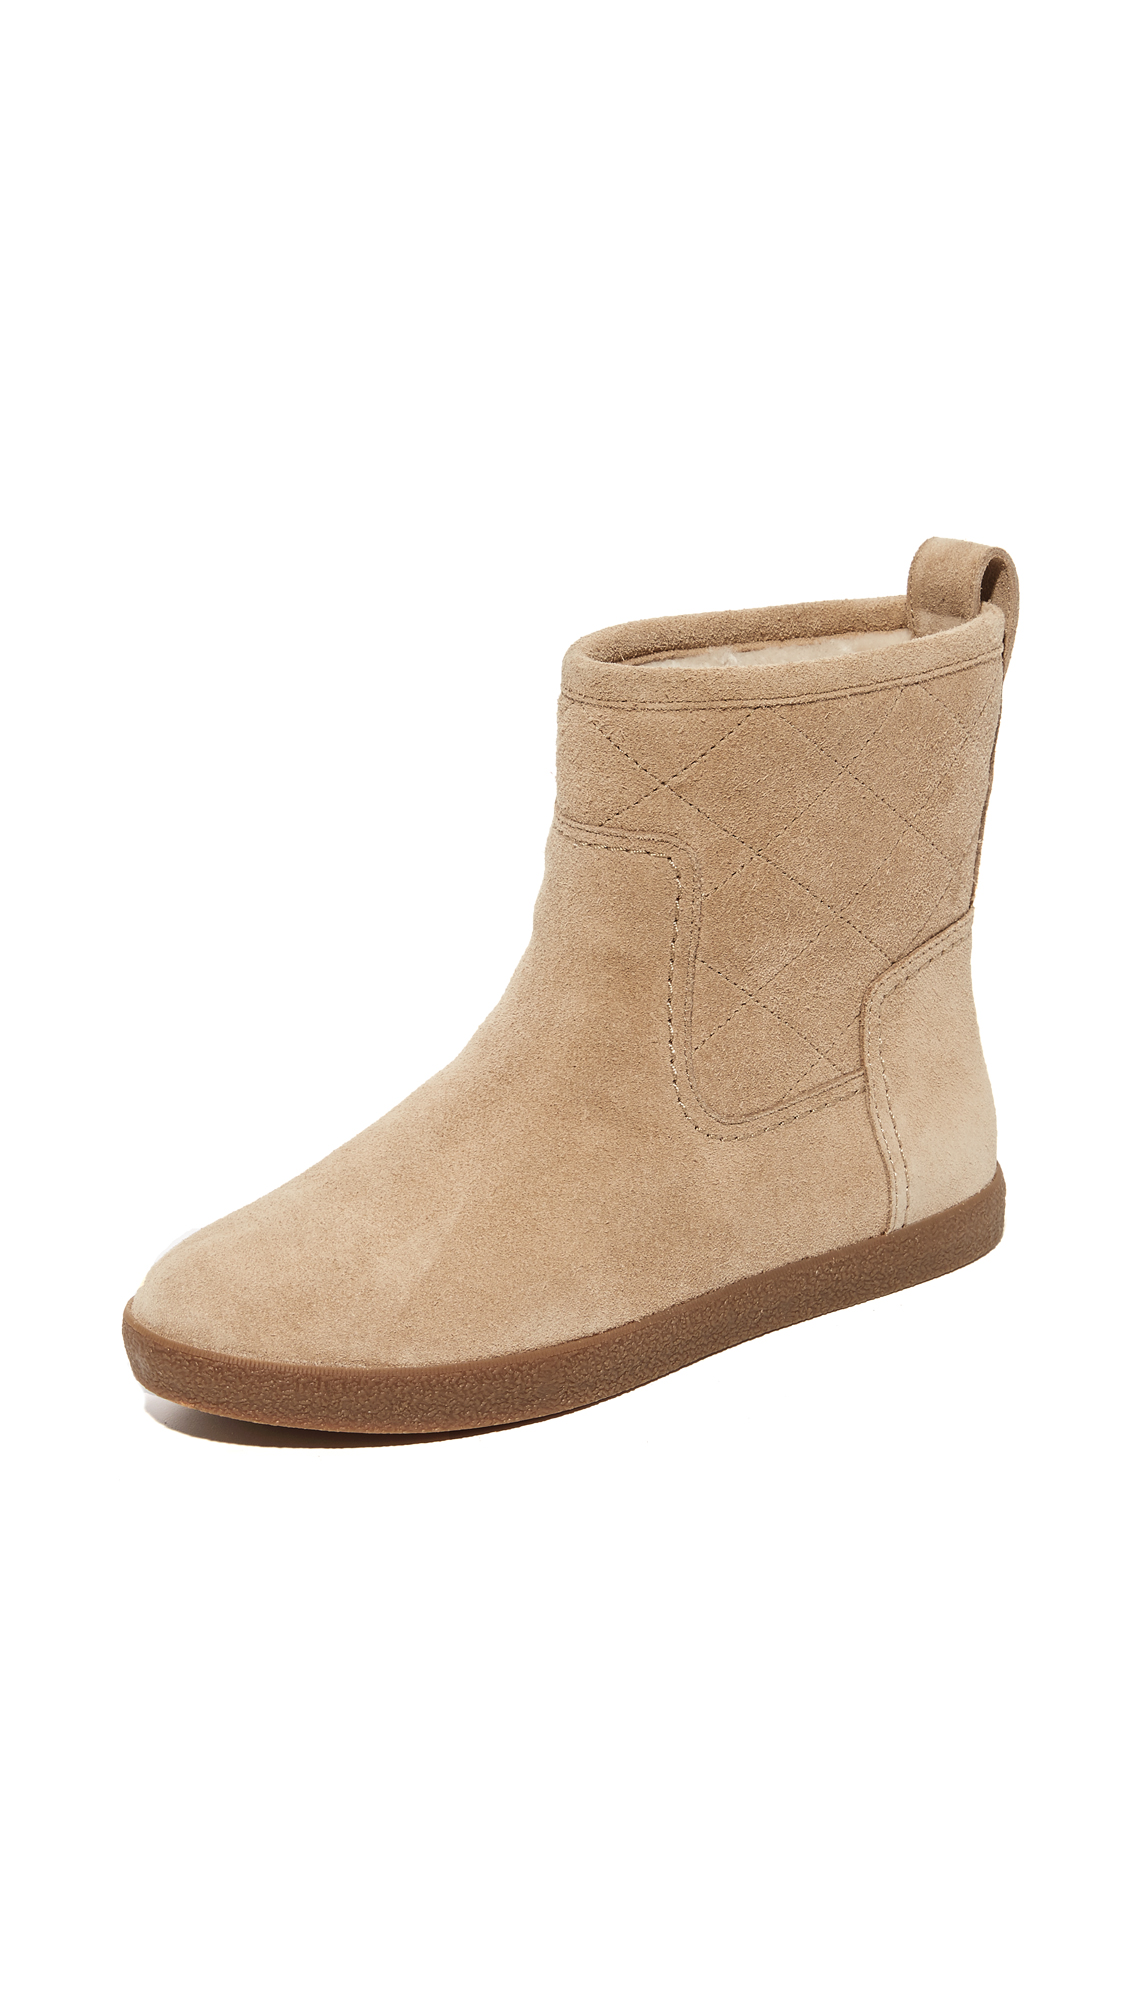 Tory Burch Alana Shearling Booties - Light Camel/Natural